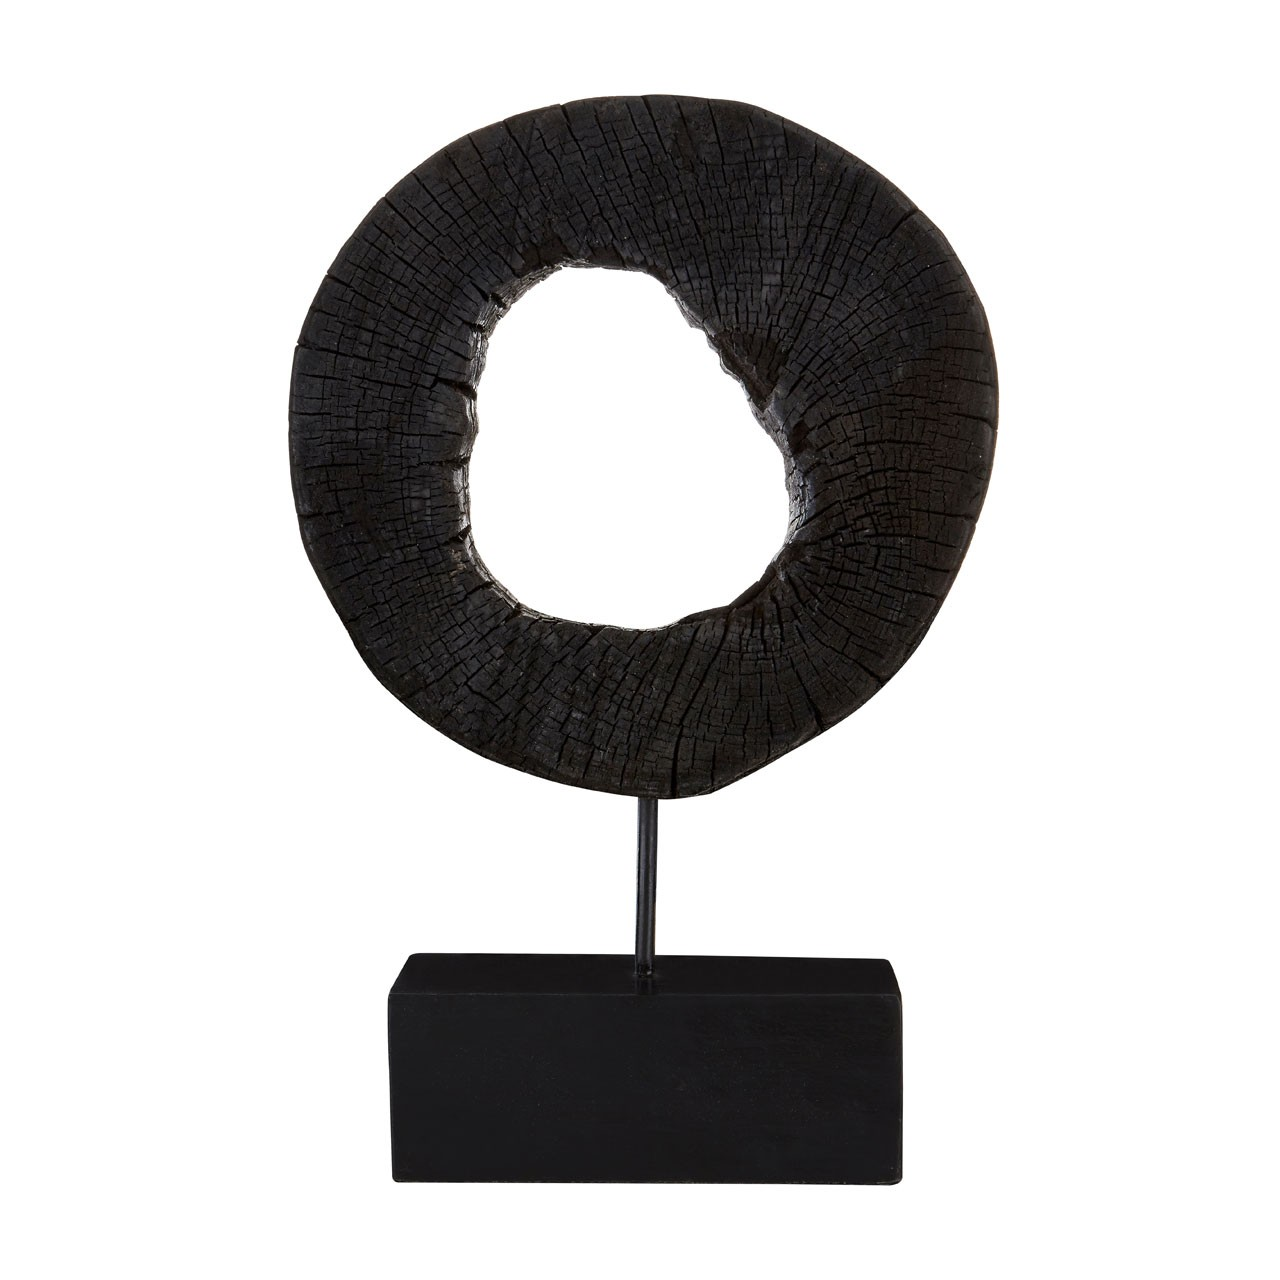 Prime Furnishing Complements Rustic Sculpture On Stand - Black